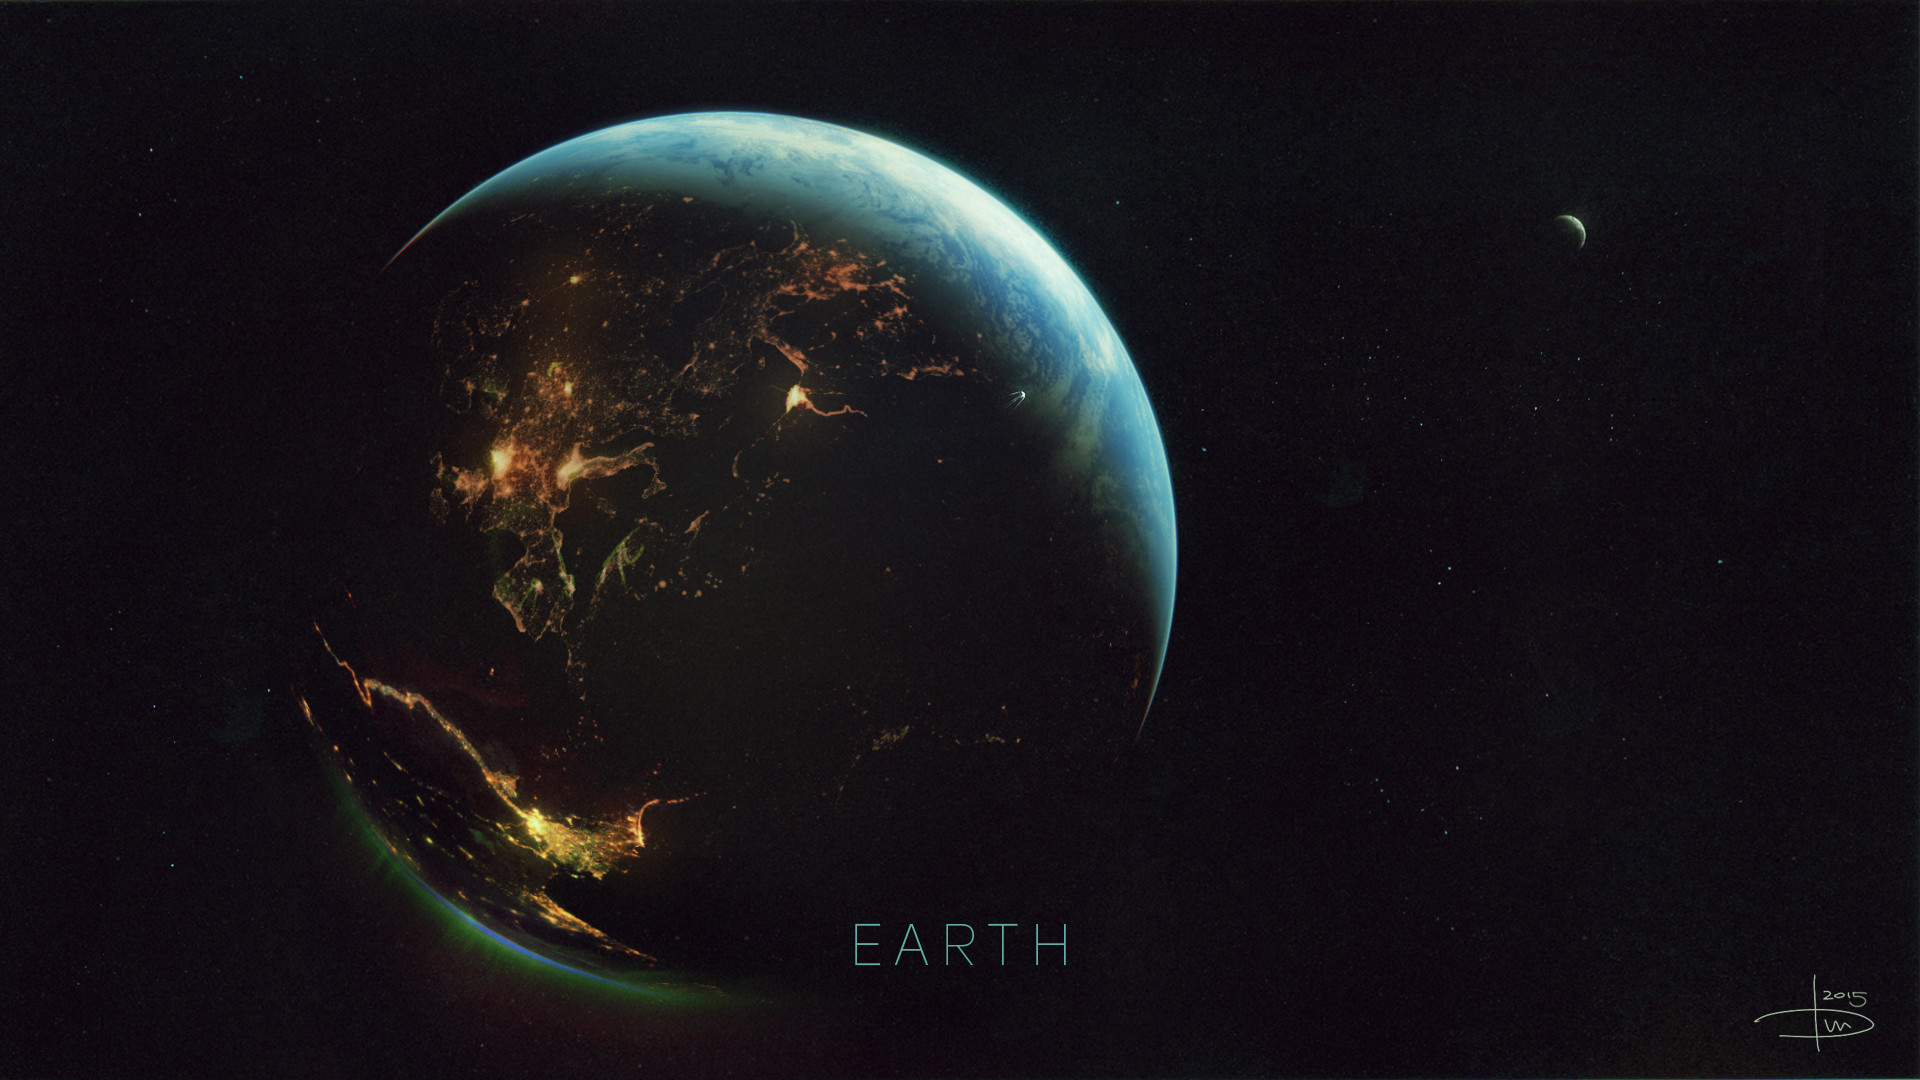 dmitry-bogoljubov-earth